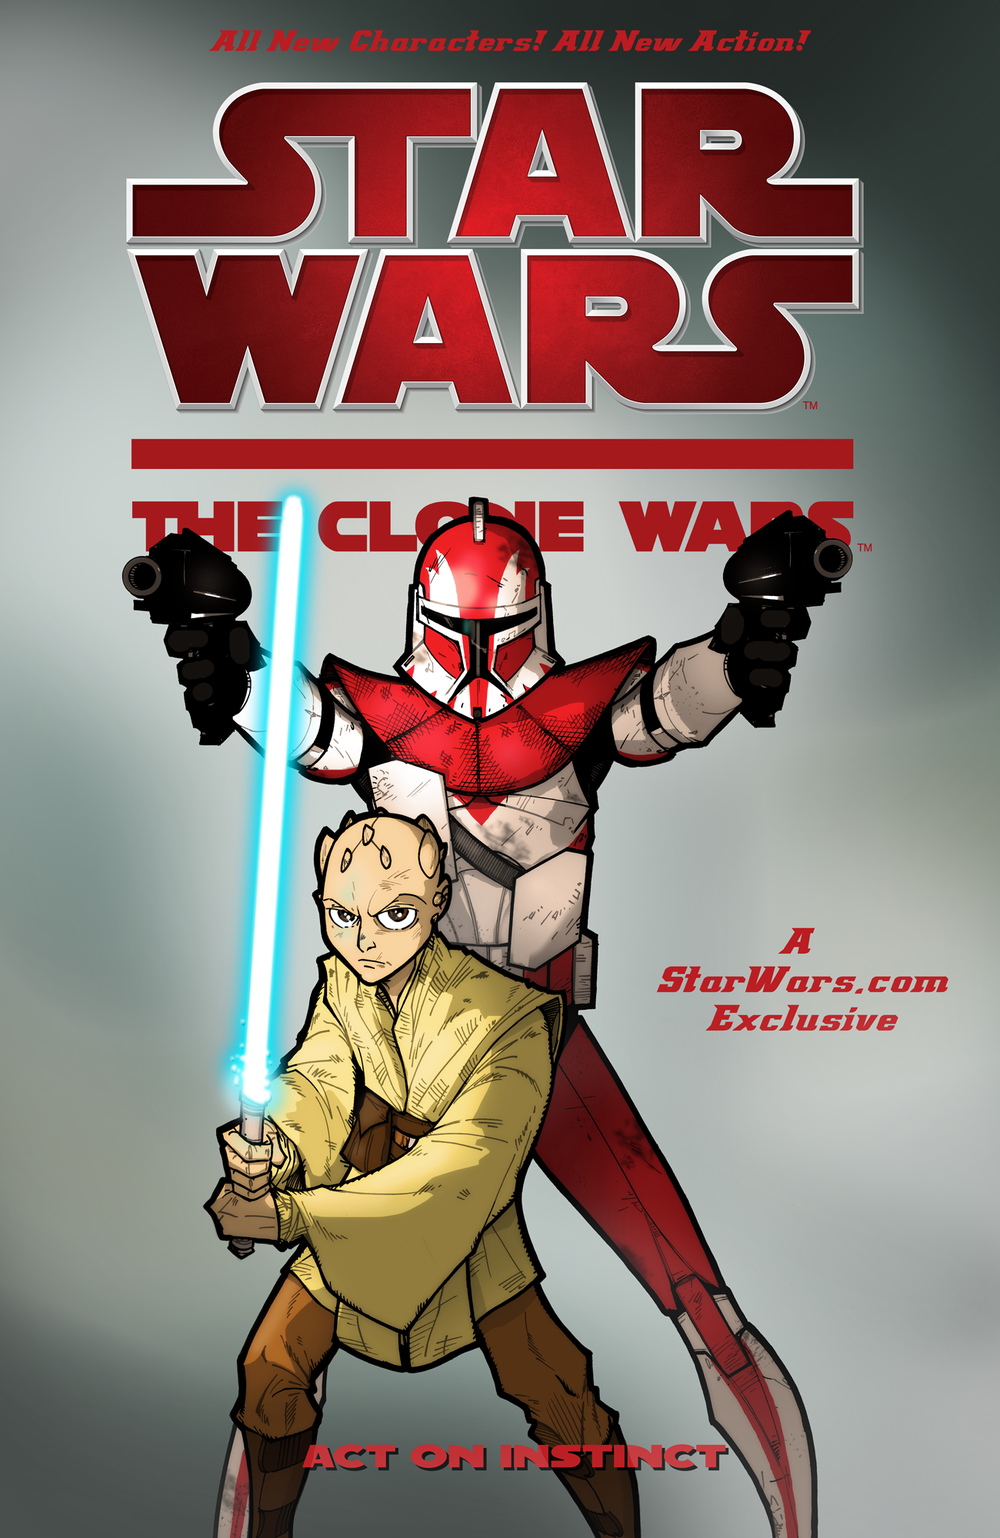 Star Wars The Clone Wars: Act on Instinct